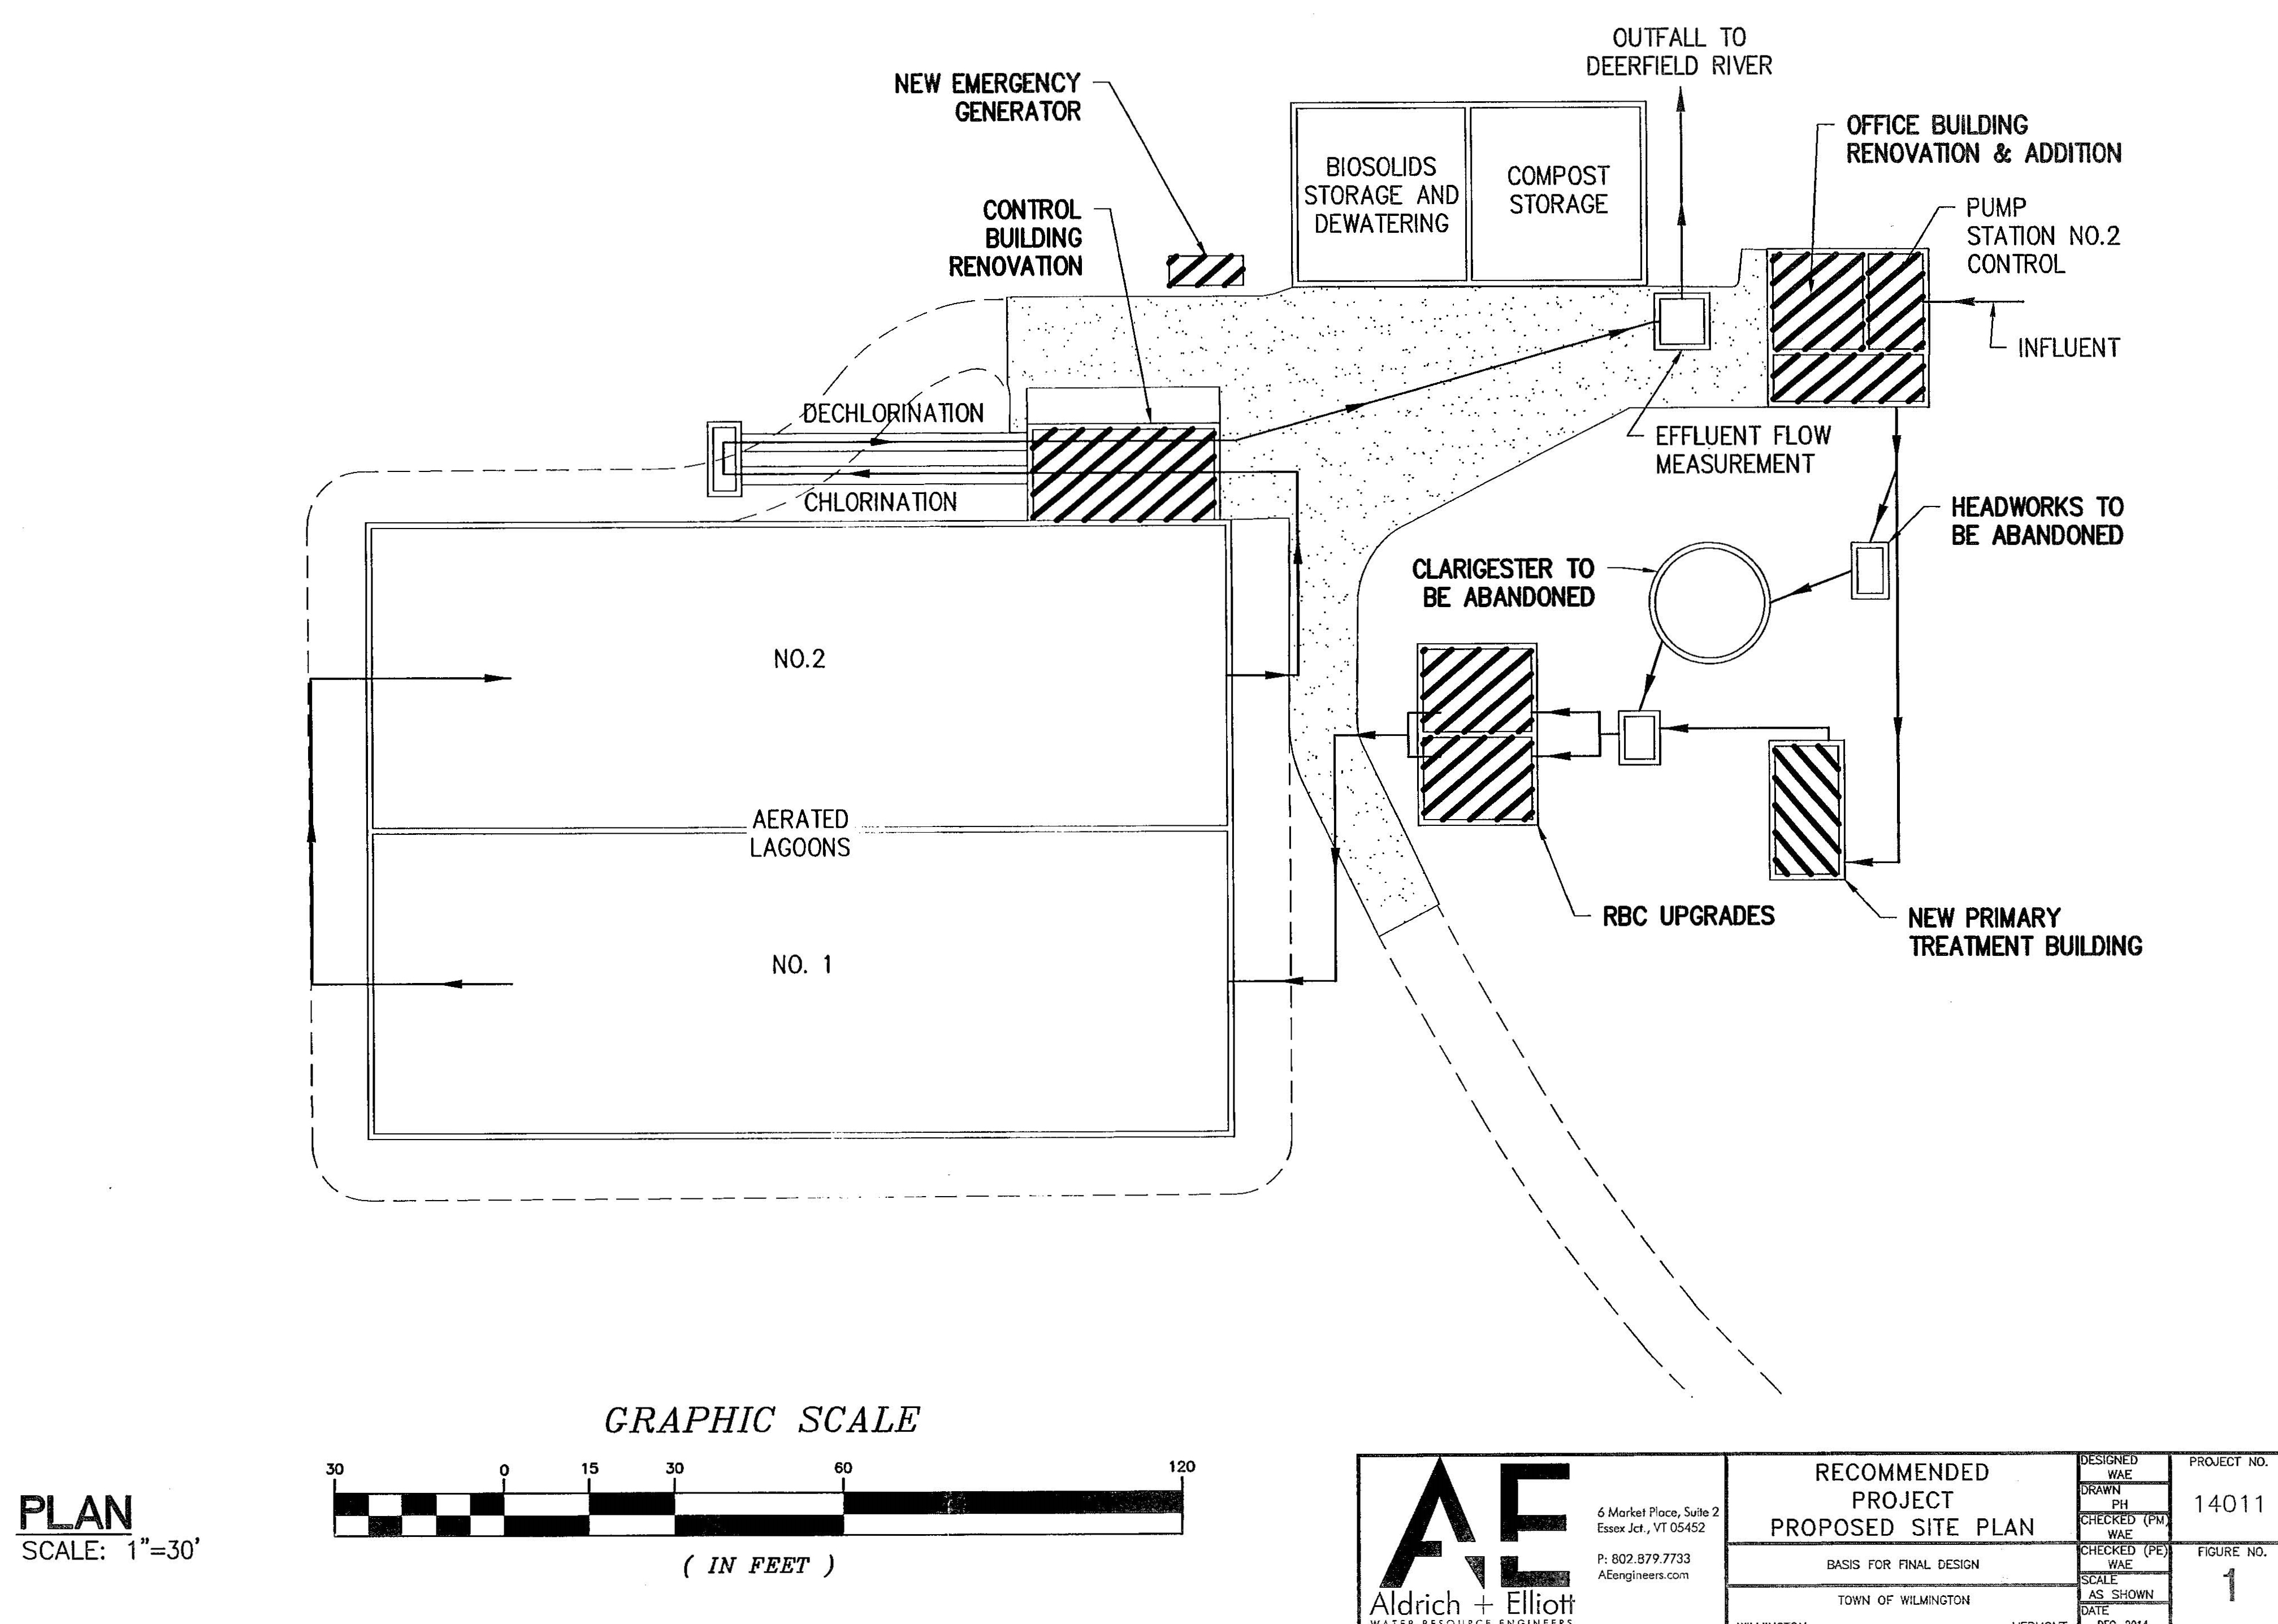 Wilmington Wastewater Facility Refurbishment Project John Deere Belt Diagram 8 10 From 7 Votes 9 Proposed Wwtp Site Plan